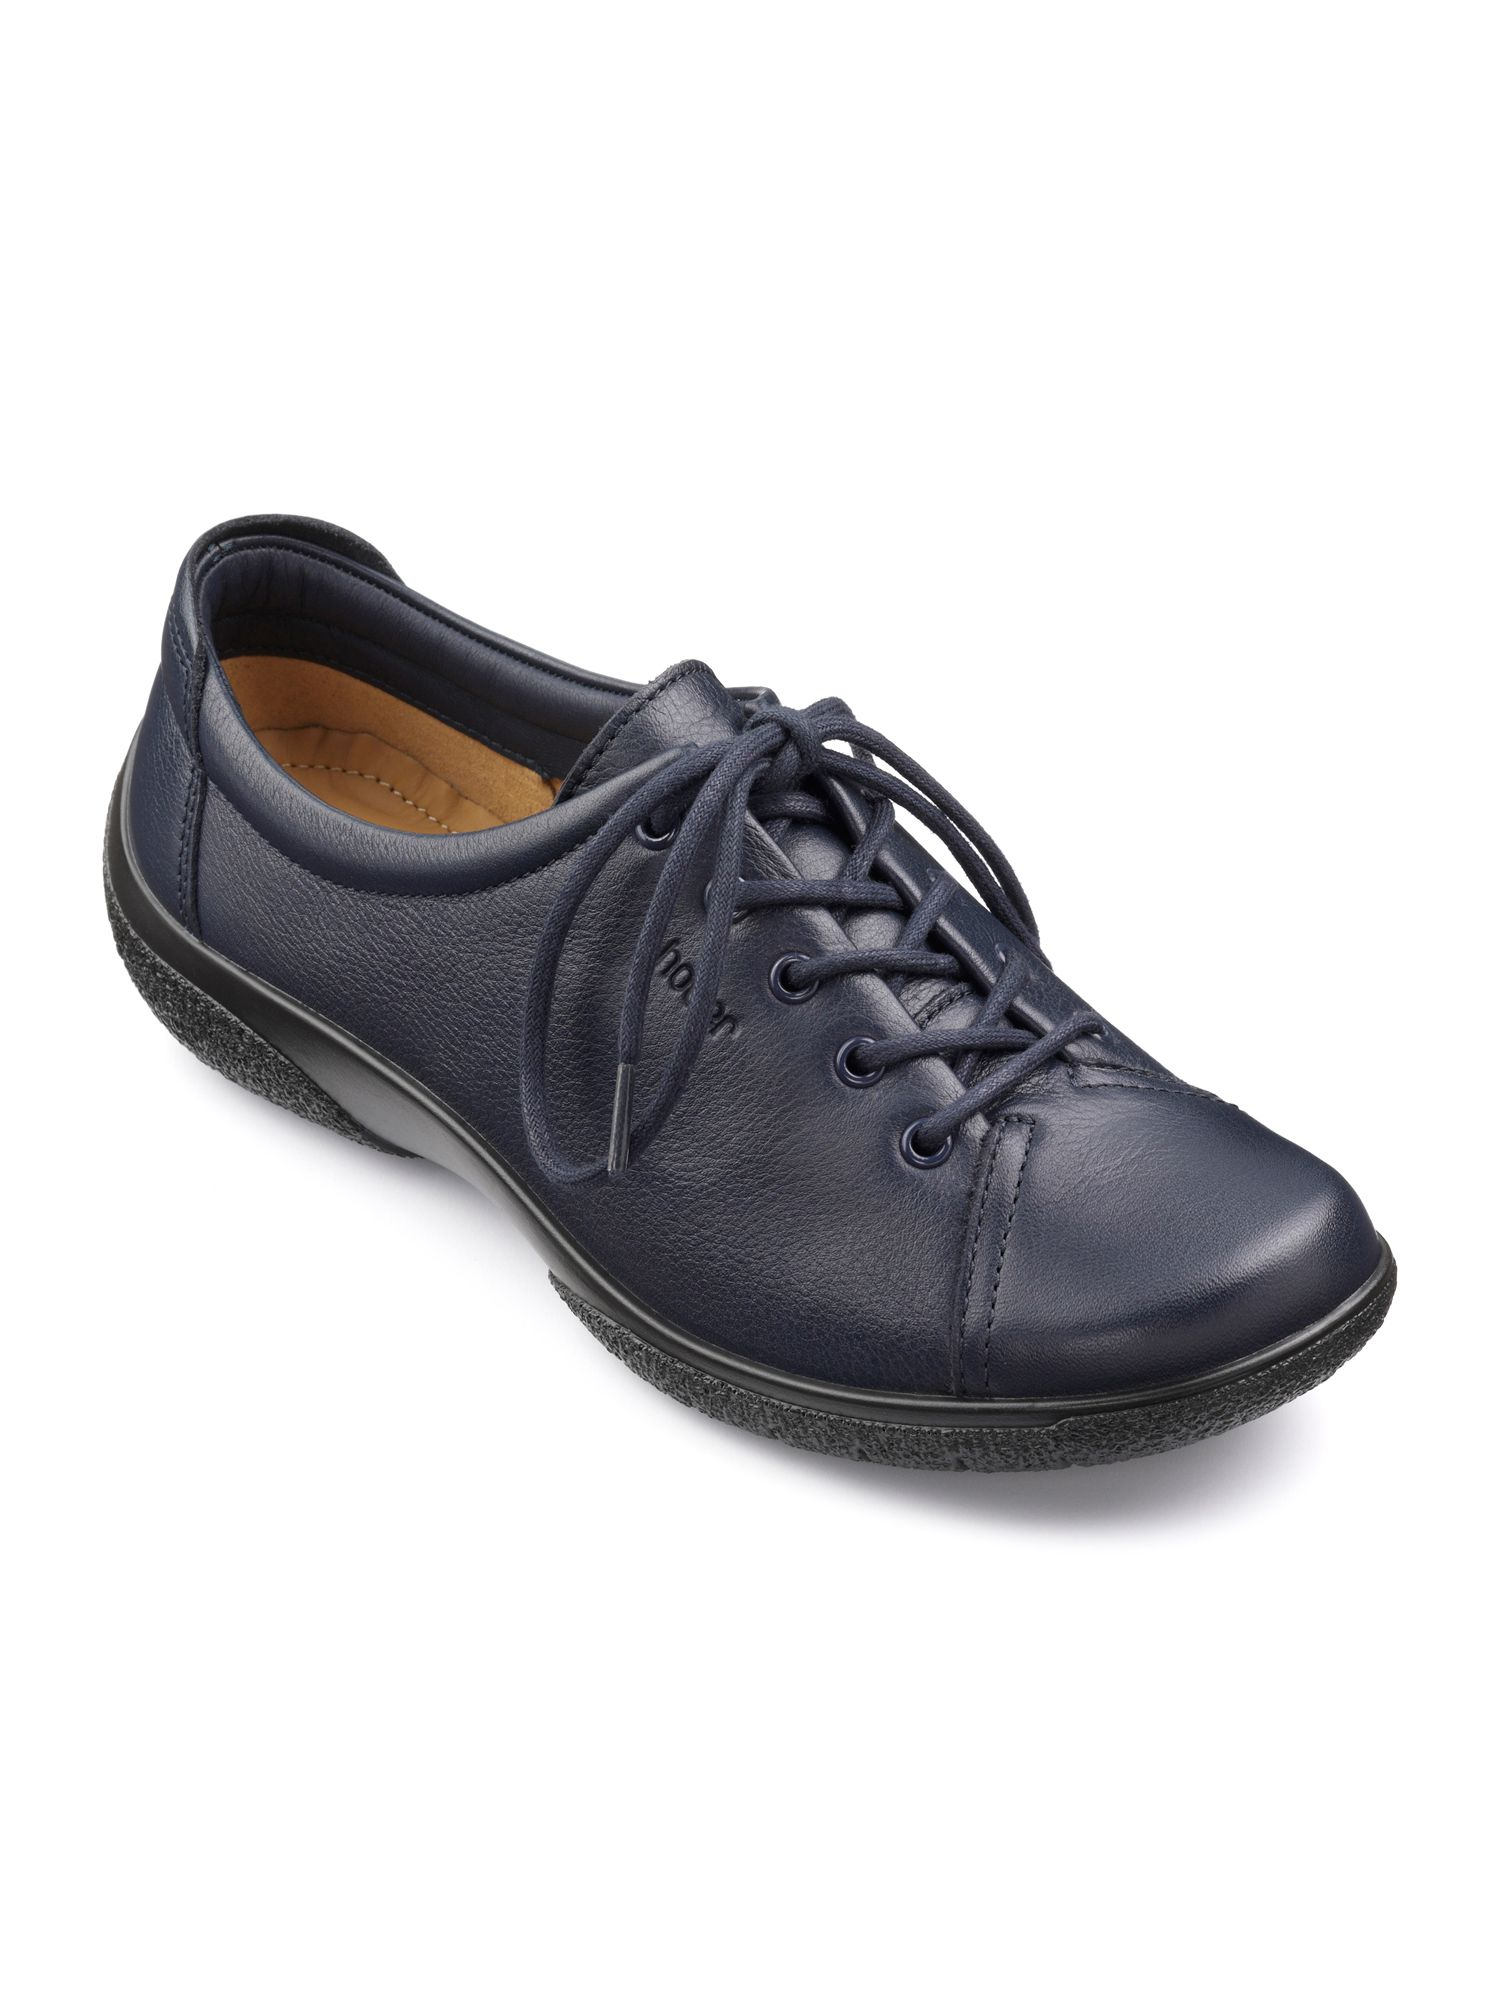 Hotter Dew Original Extra Wide Shoes, French Blue